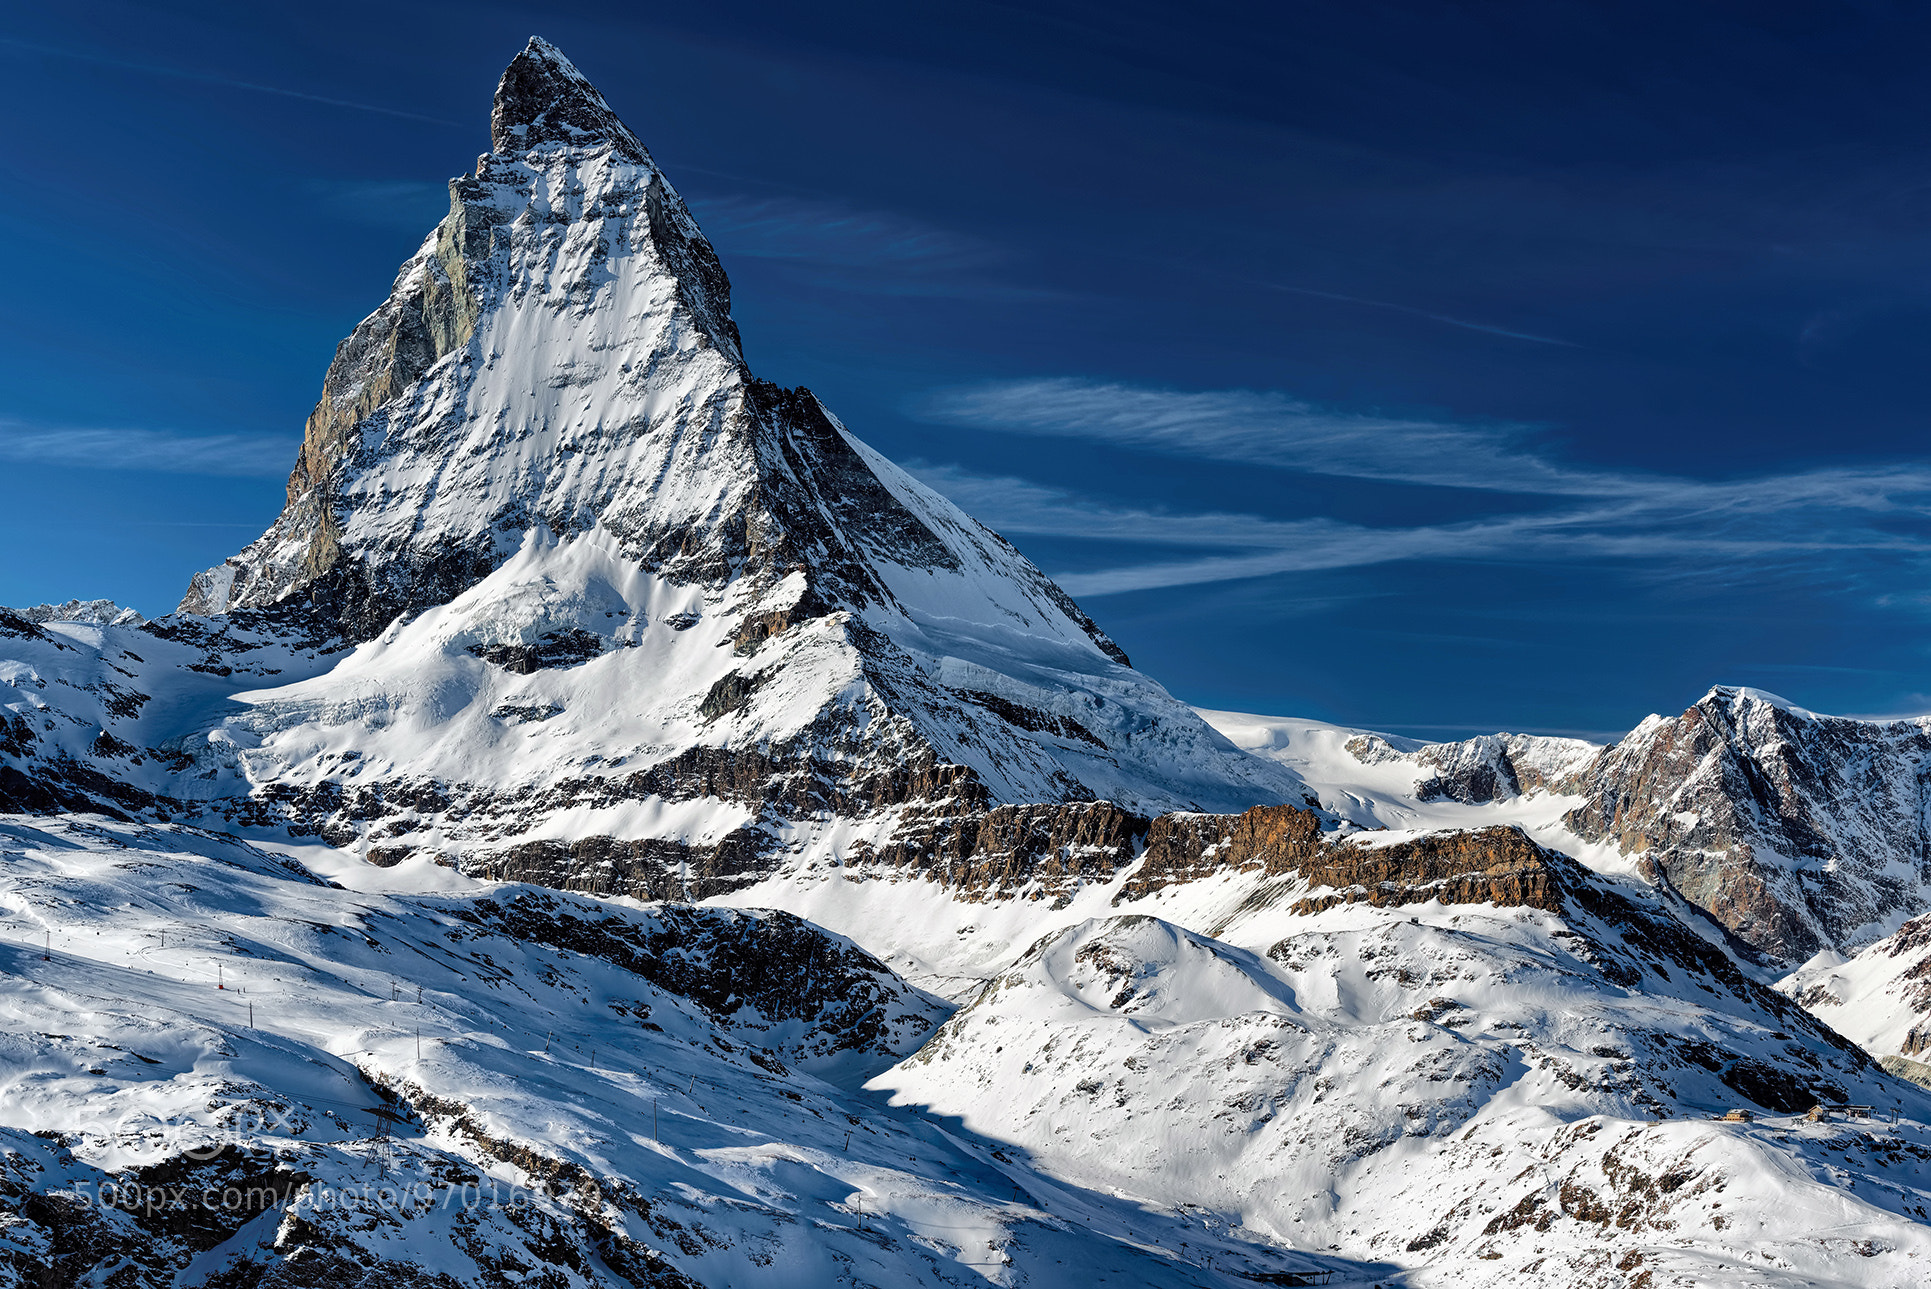 500px 上の Hans-Peter Deutsch の写真 The Matterhorn